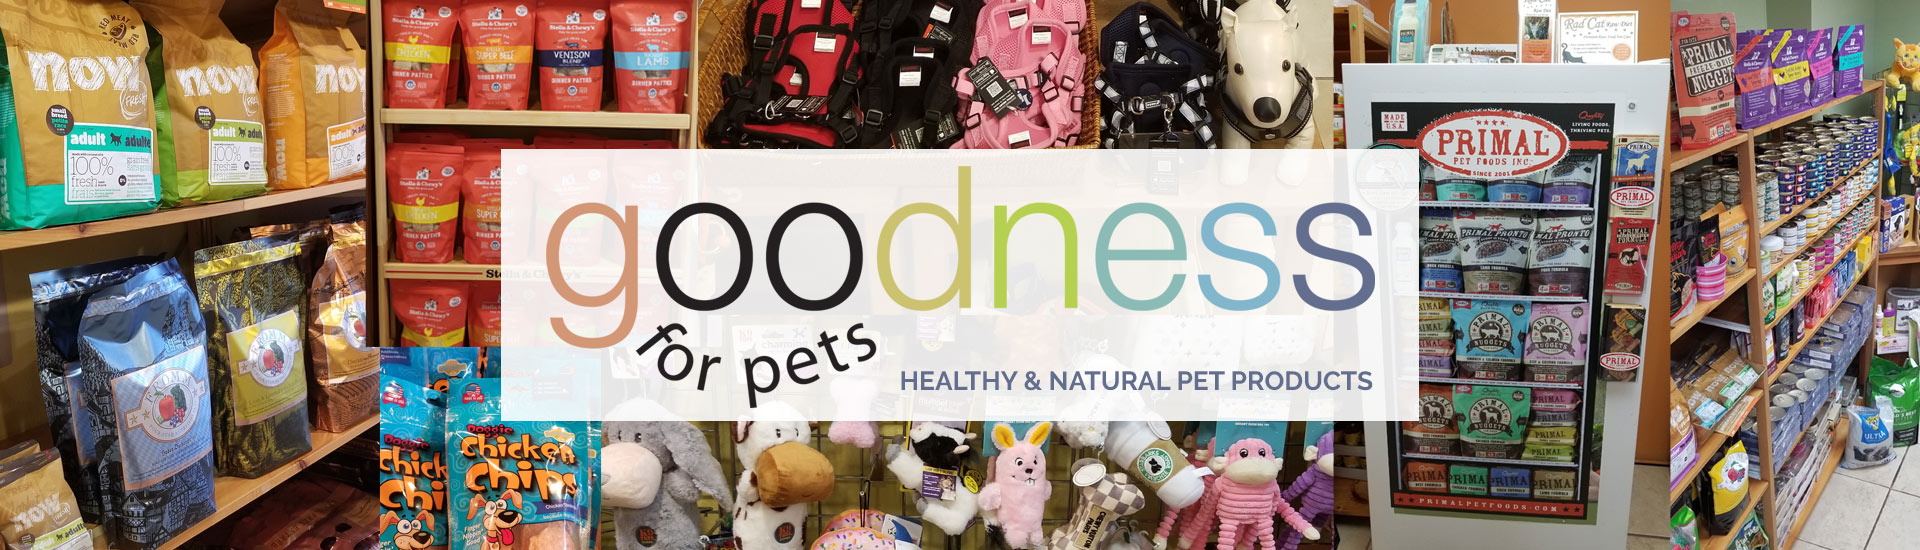 Goodness for Pets Naples Natural Pet Food and Supply Store